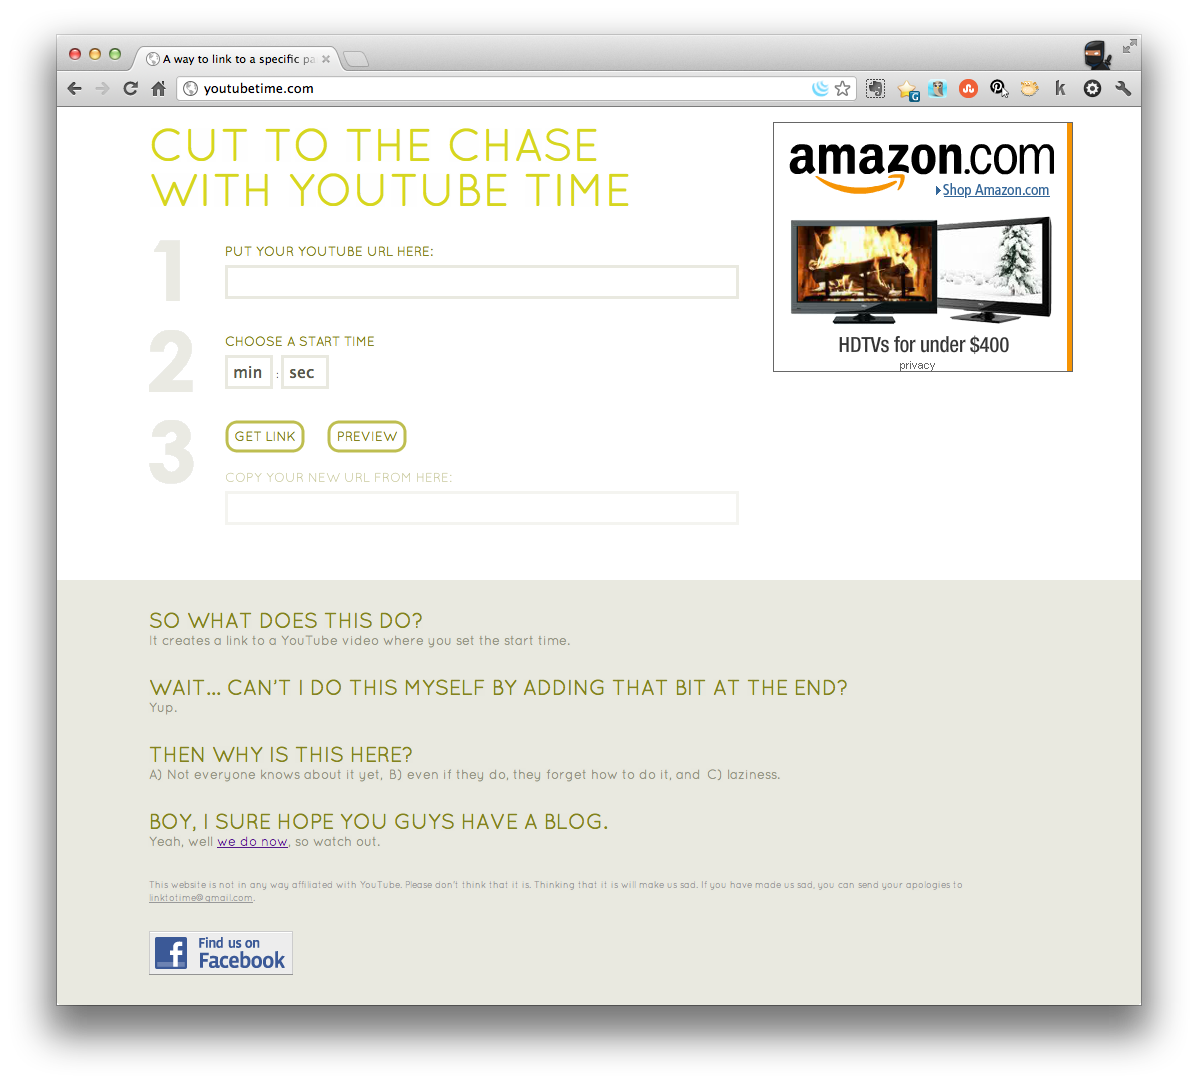 How-To Set Your YouTube Video Start Time